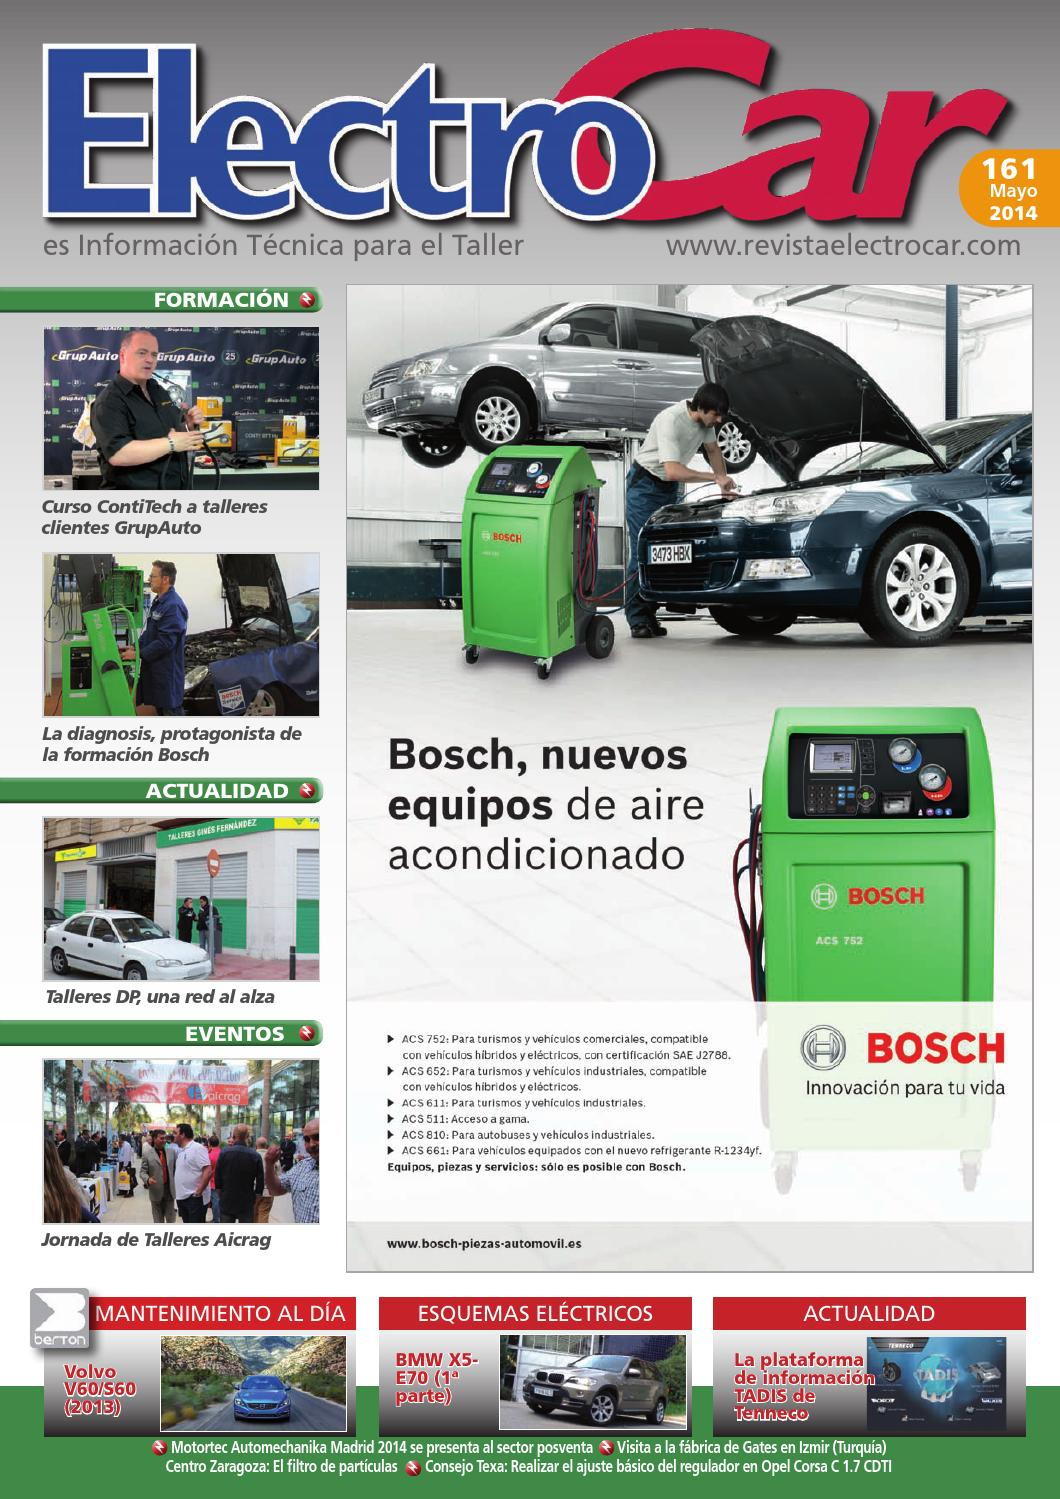 ElectroCar 161 - 5/2014 by CEI Arsis, S. L. - issuu